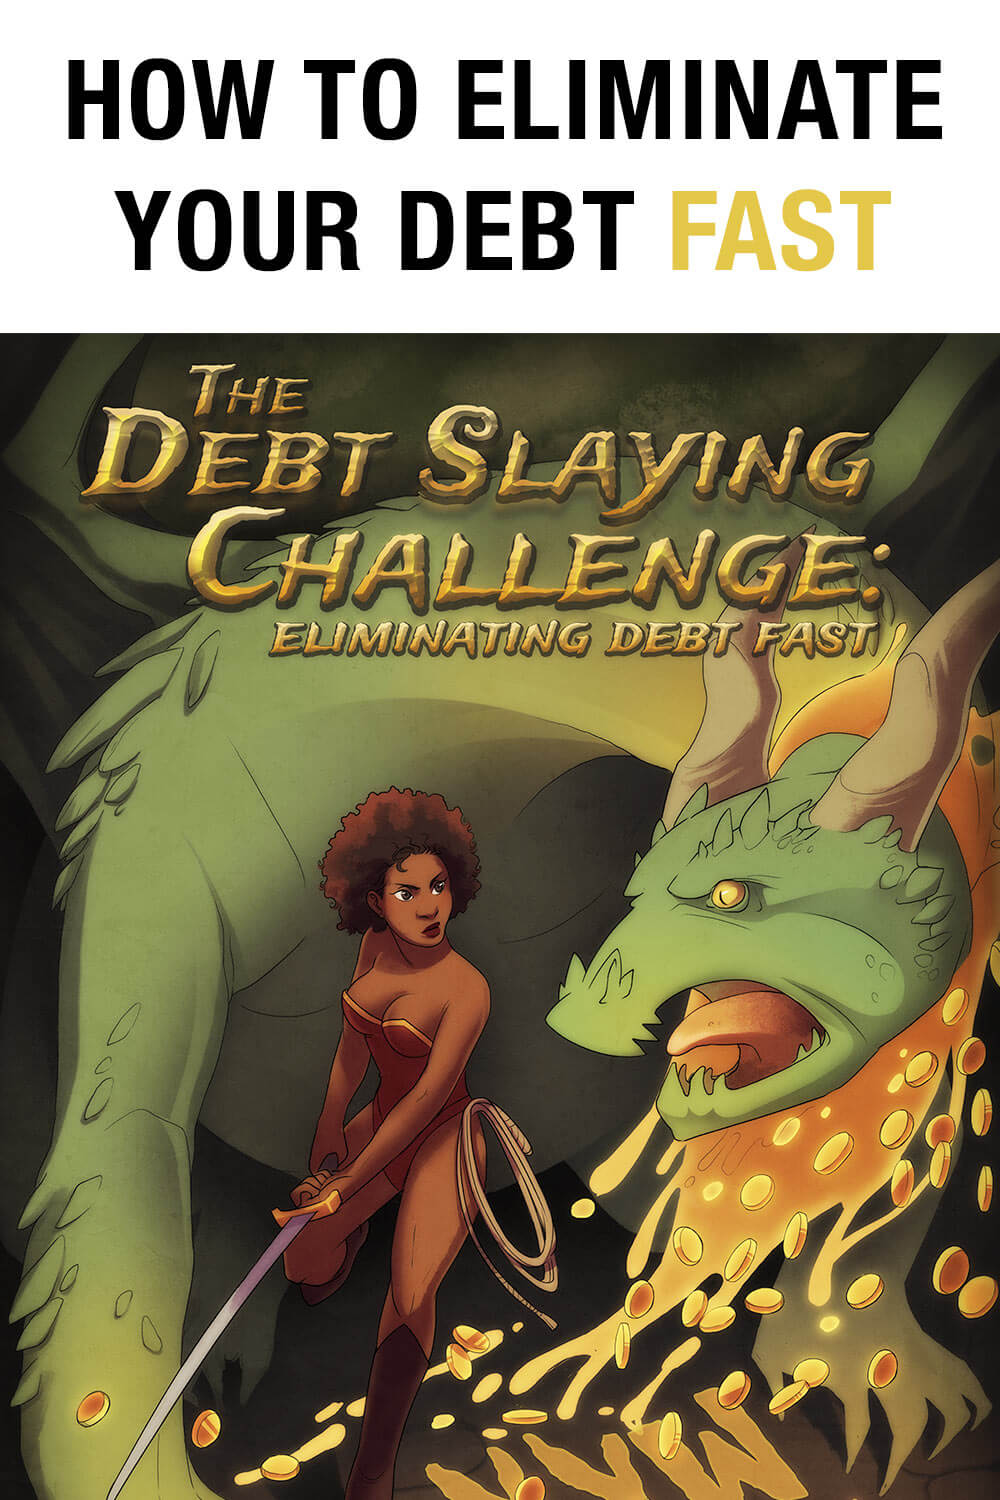 Join the challenge to earn extra money so you can eliminate debt